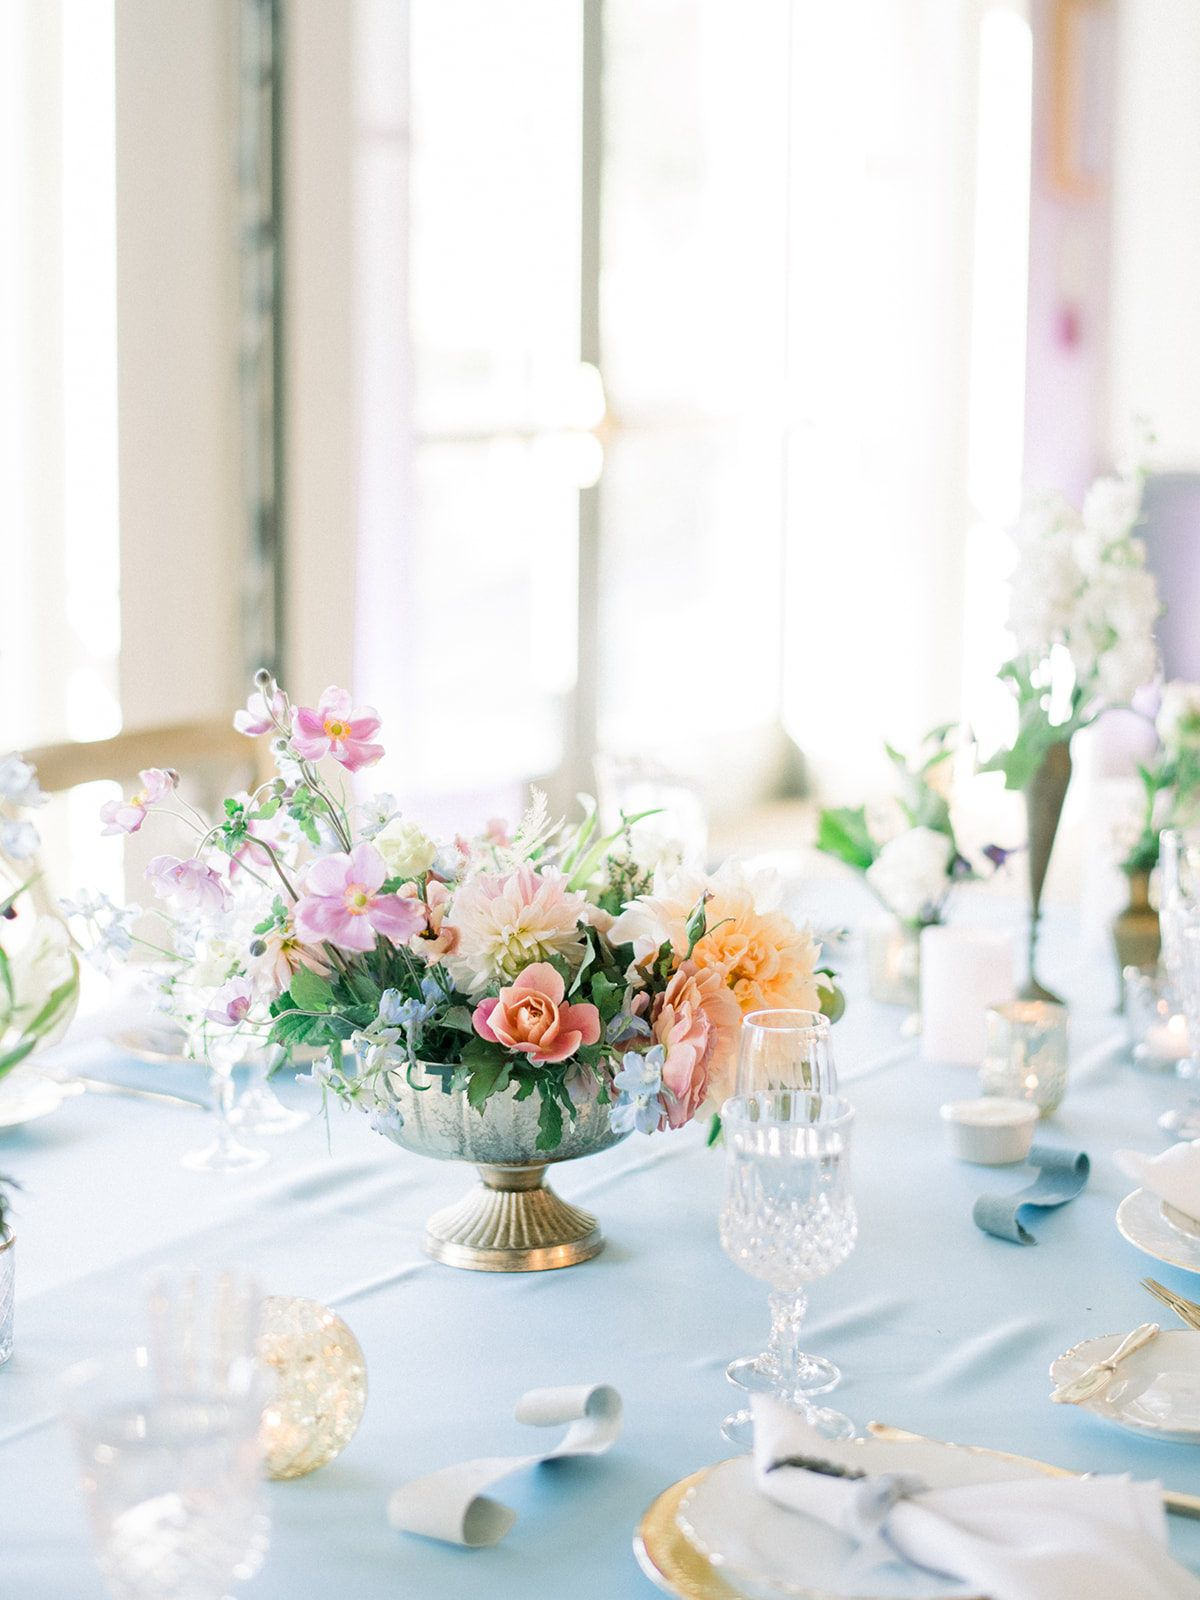 The Prettiest Pastel Wedding Inspiration At Diamond Bar Center Pastel Wedding Wedding Wedding Inspiration